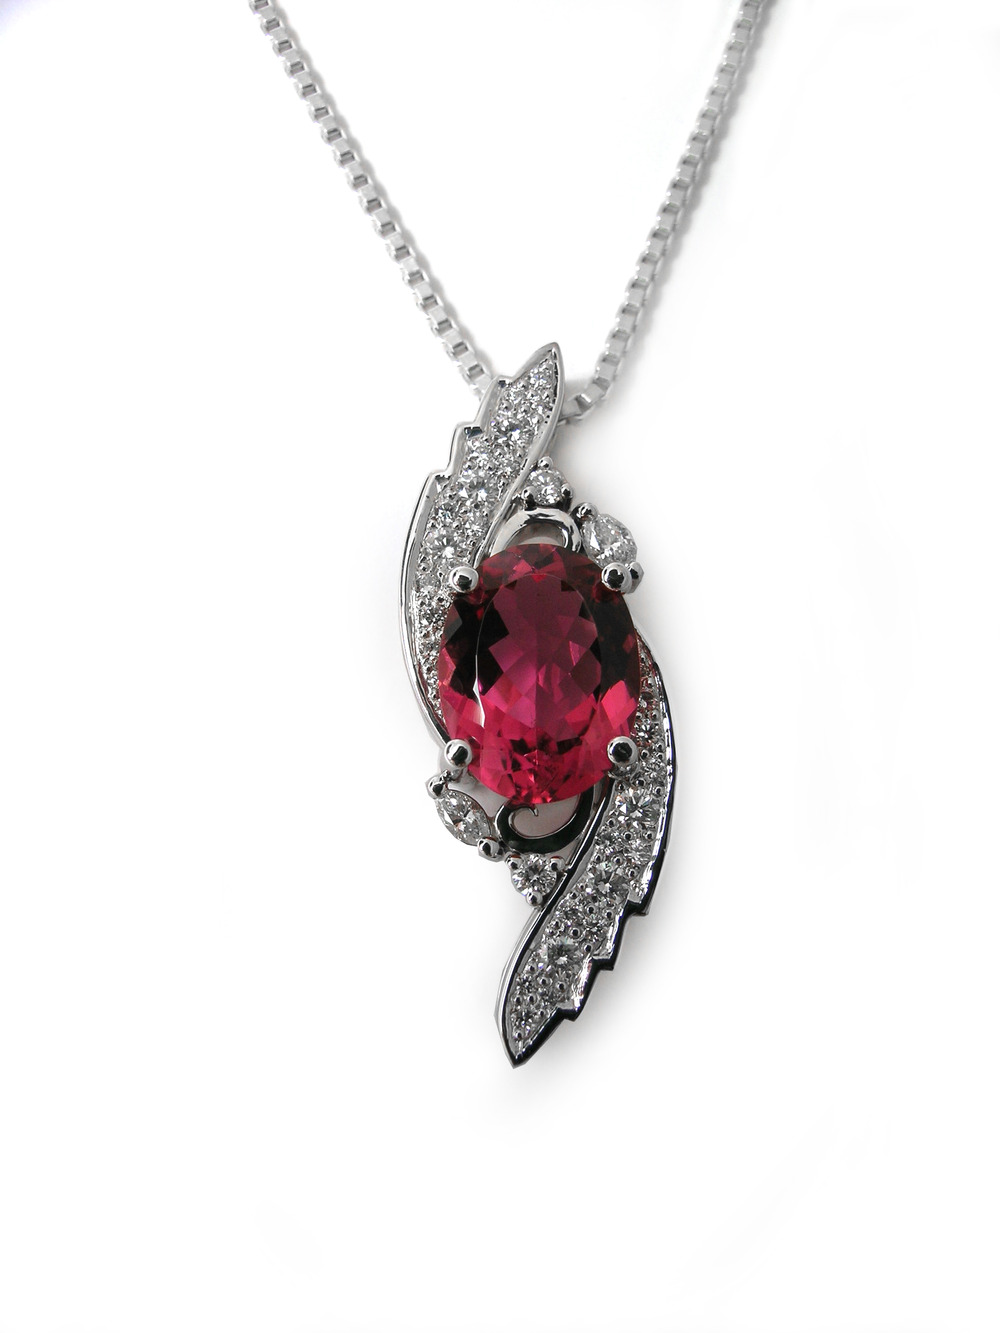 Sharon Pink tourmaline copy.jpg